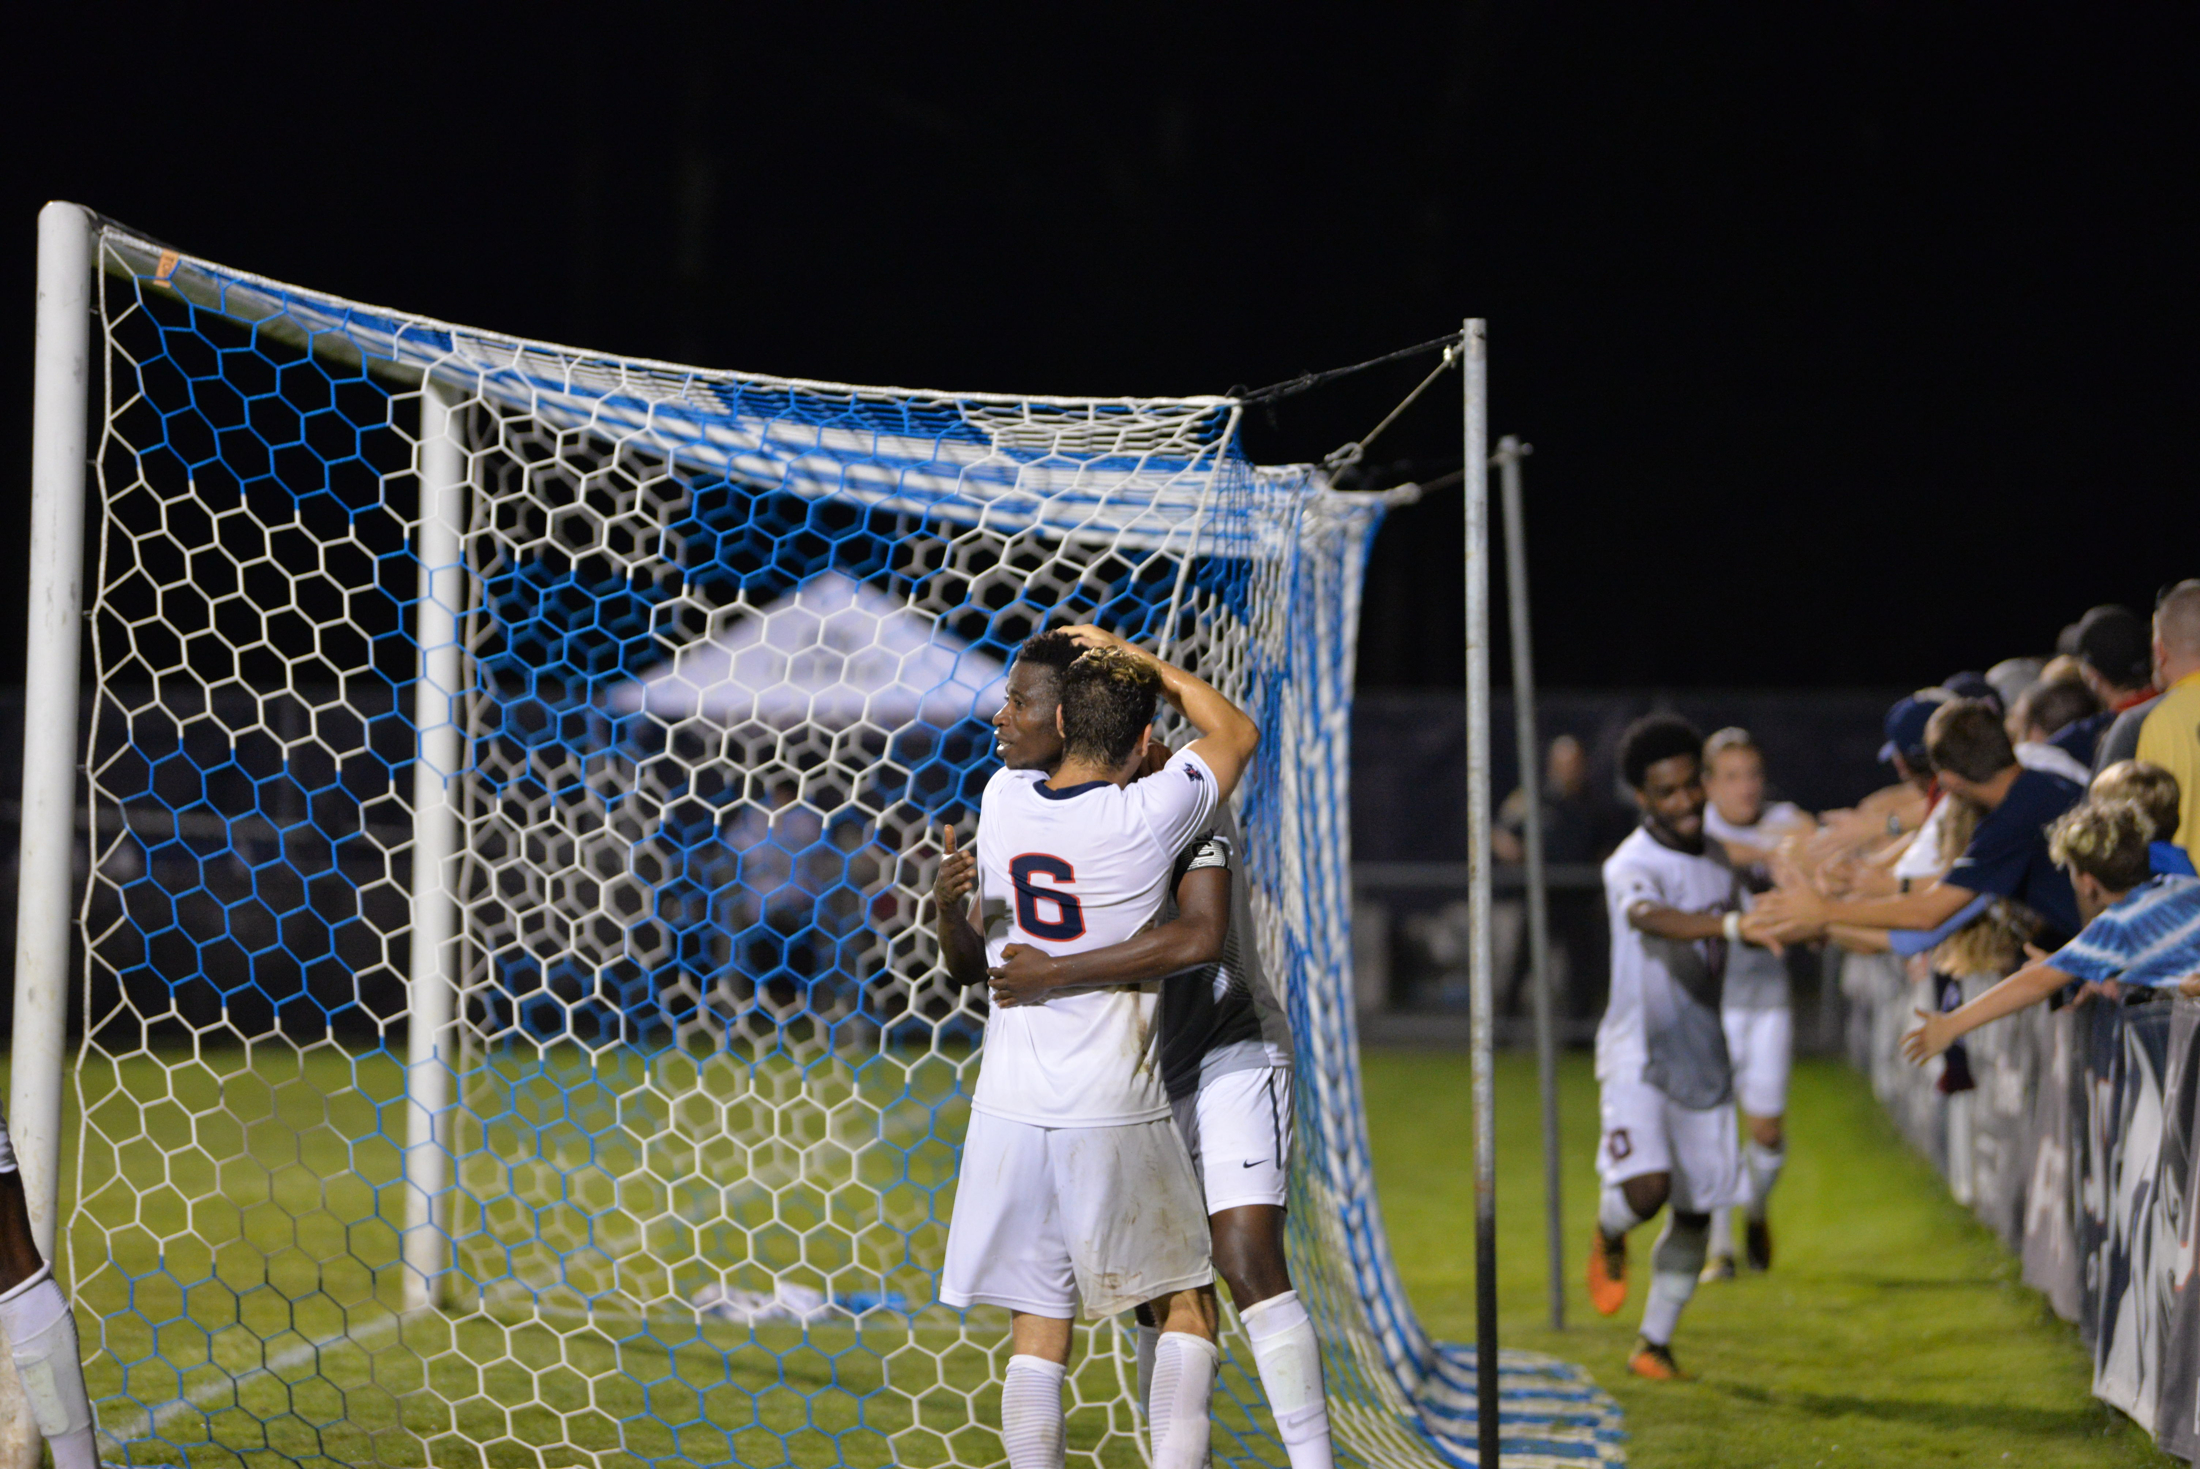 UConn's Abdou Mbacke Thiam and Dylan Greenberg celebrate after the game-winning goal Tuesday night. (Amar Batra/The Daily Campus)